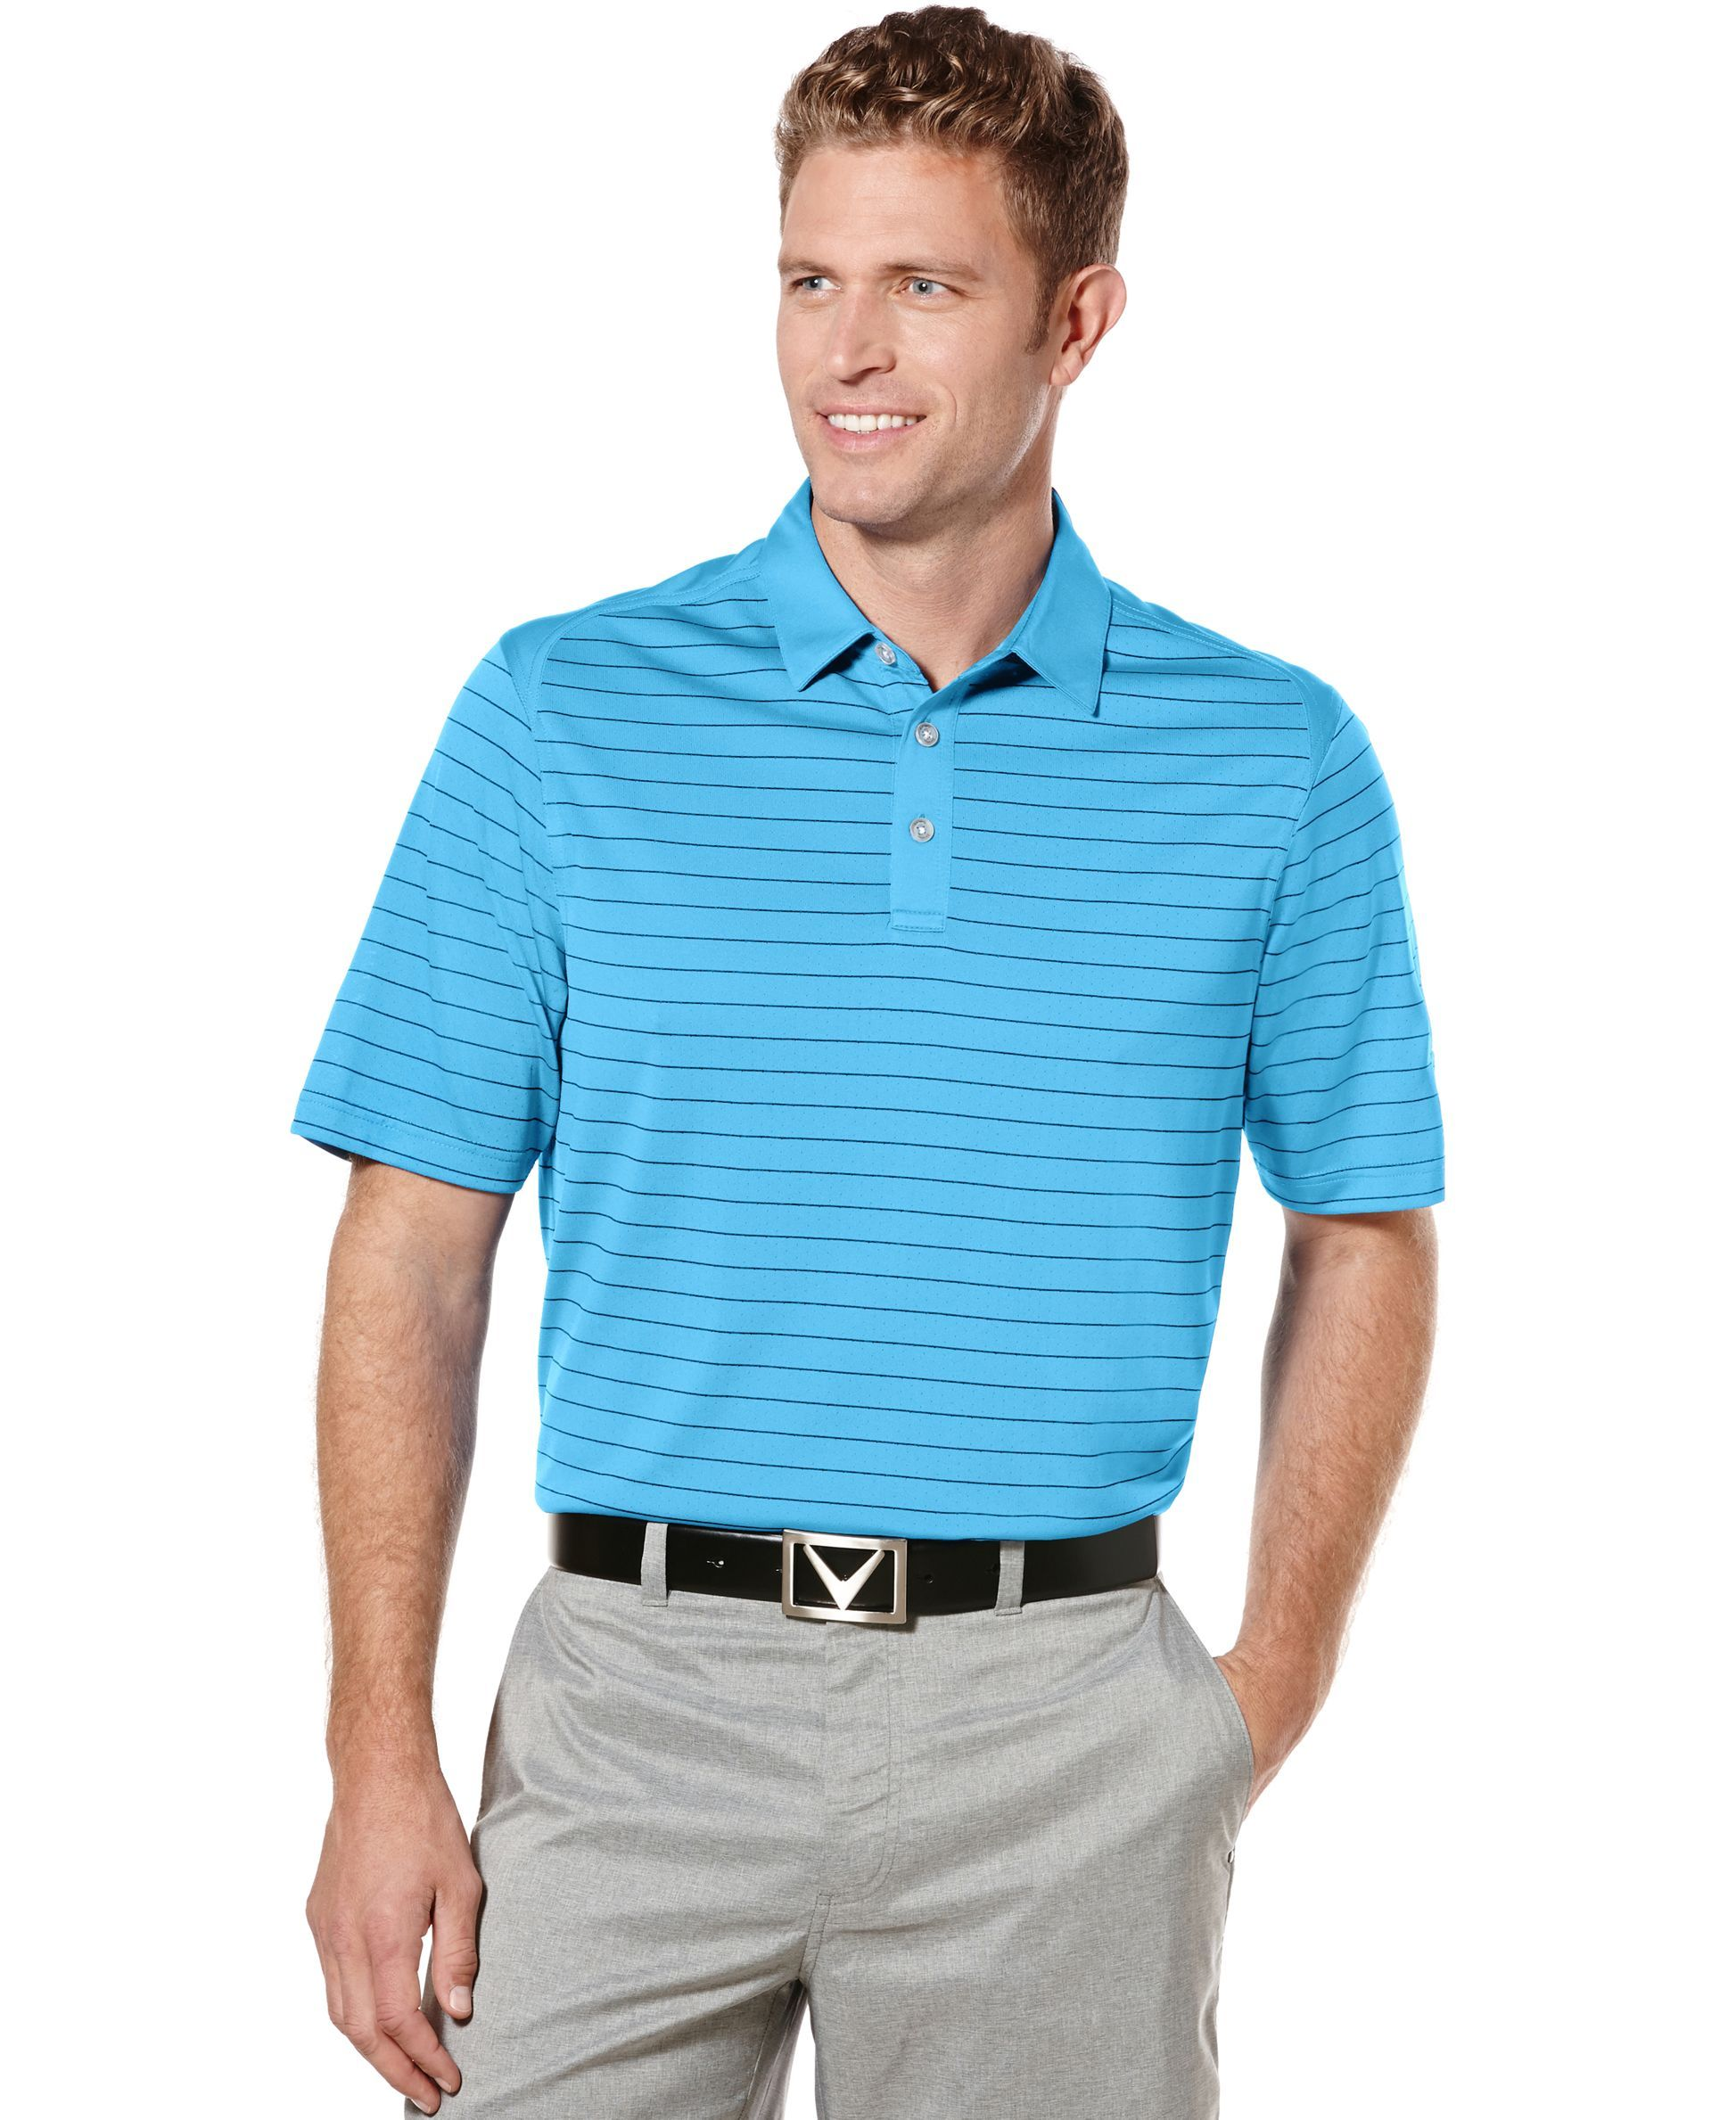 5d6d3626 Callaway Opti-Dri Striped Performance Golf Polo | Products | Polo ...